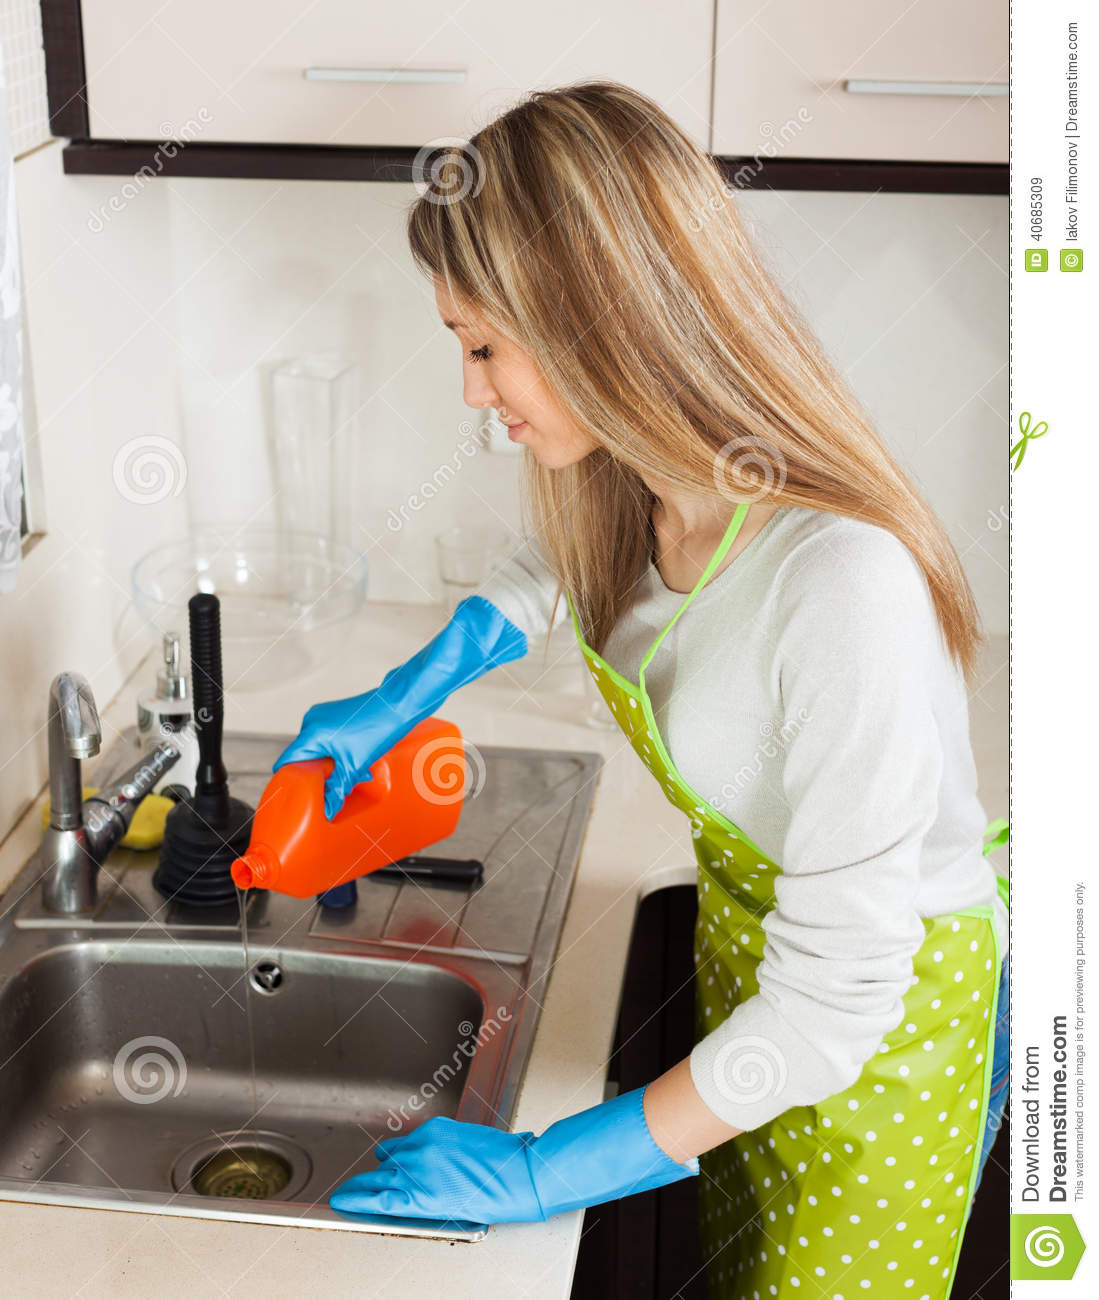 Blonde Woman Cleaning Pipe With Detergent Stock Photo Image 40685309